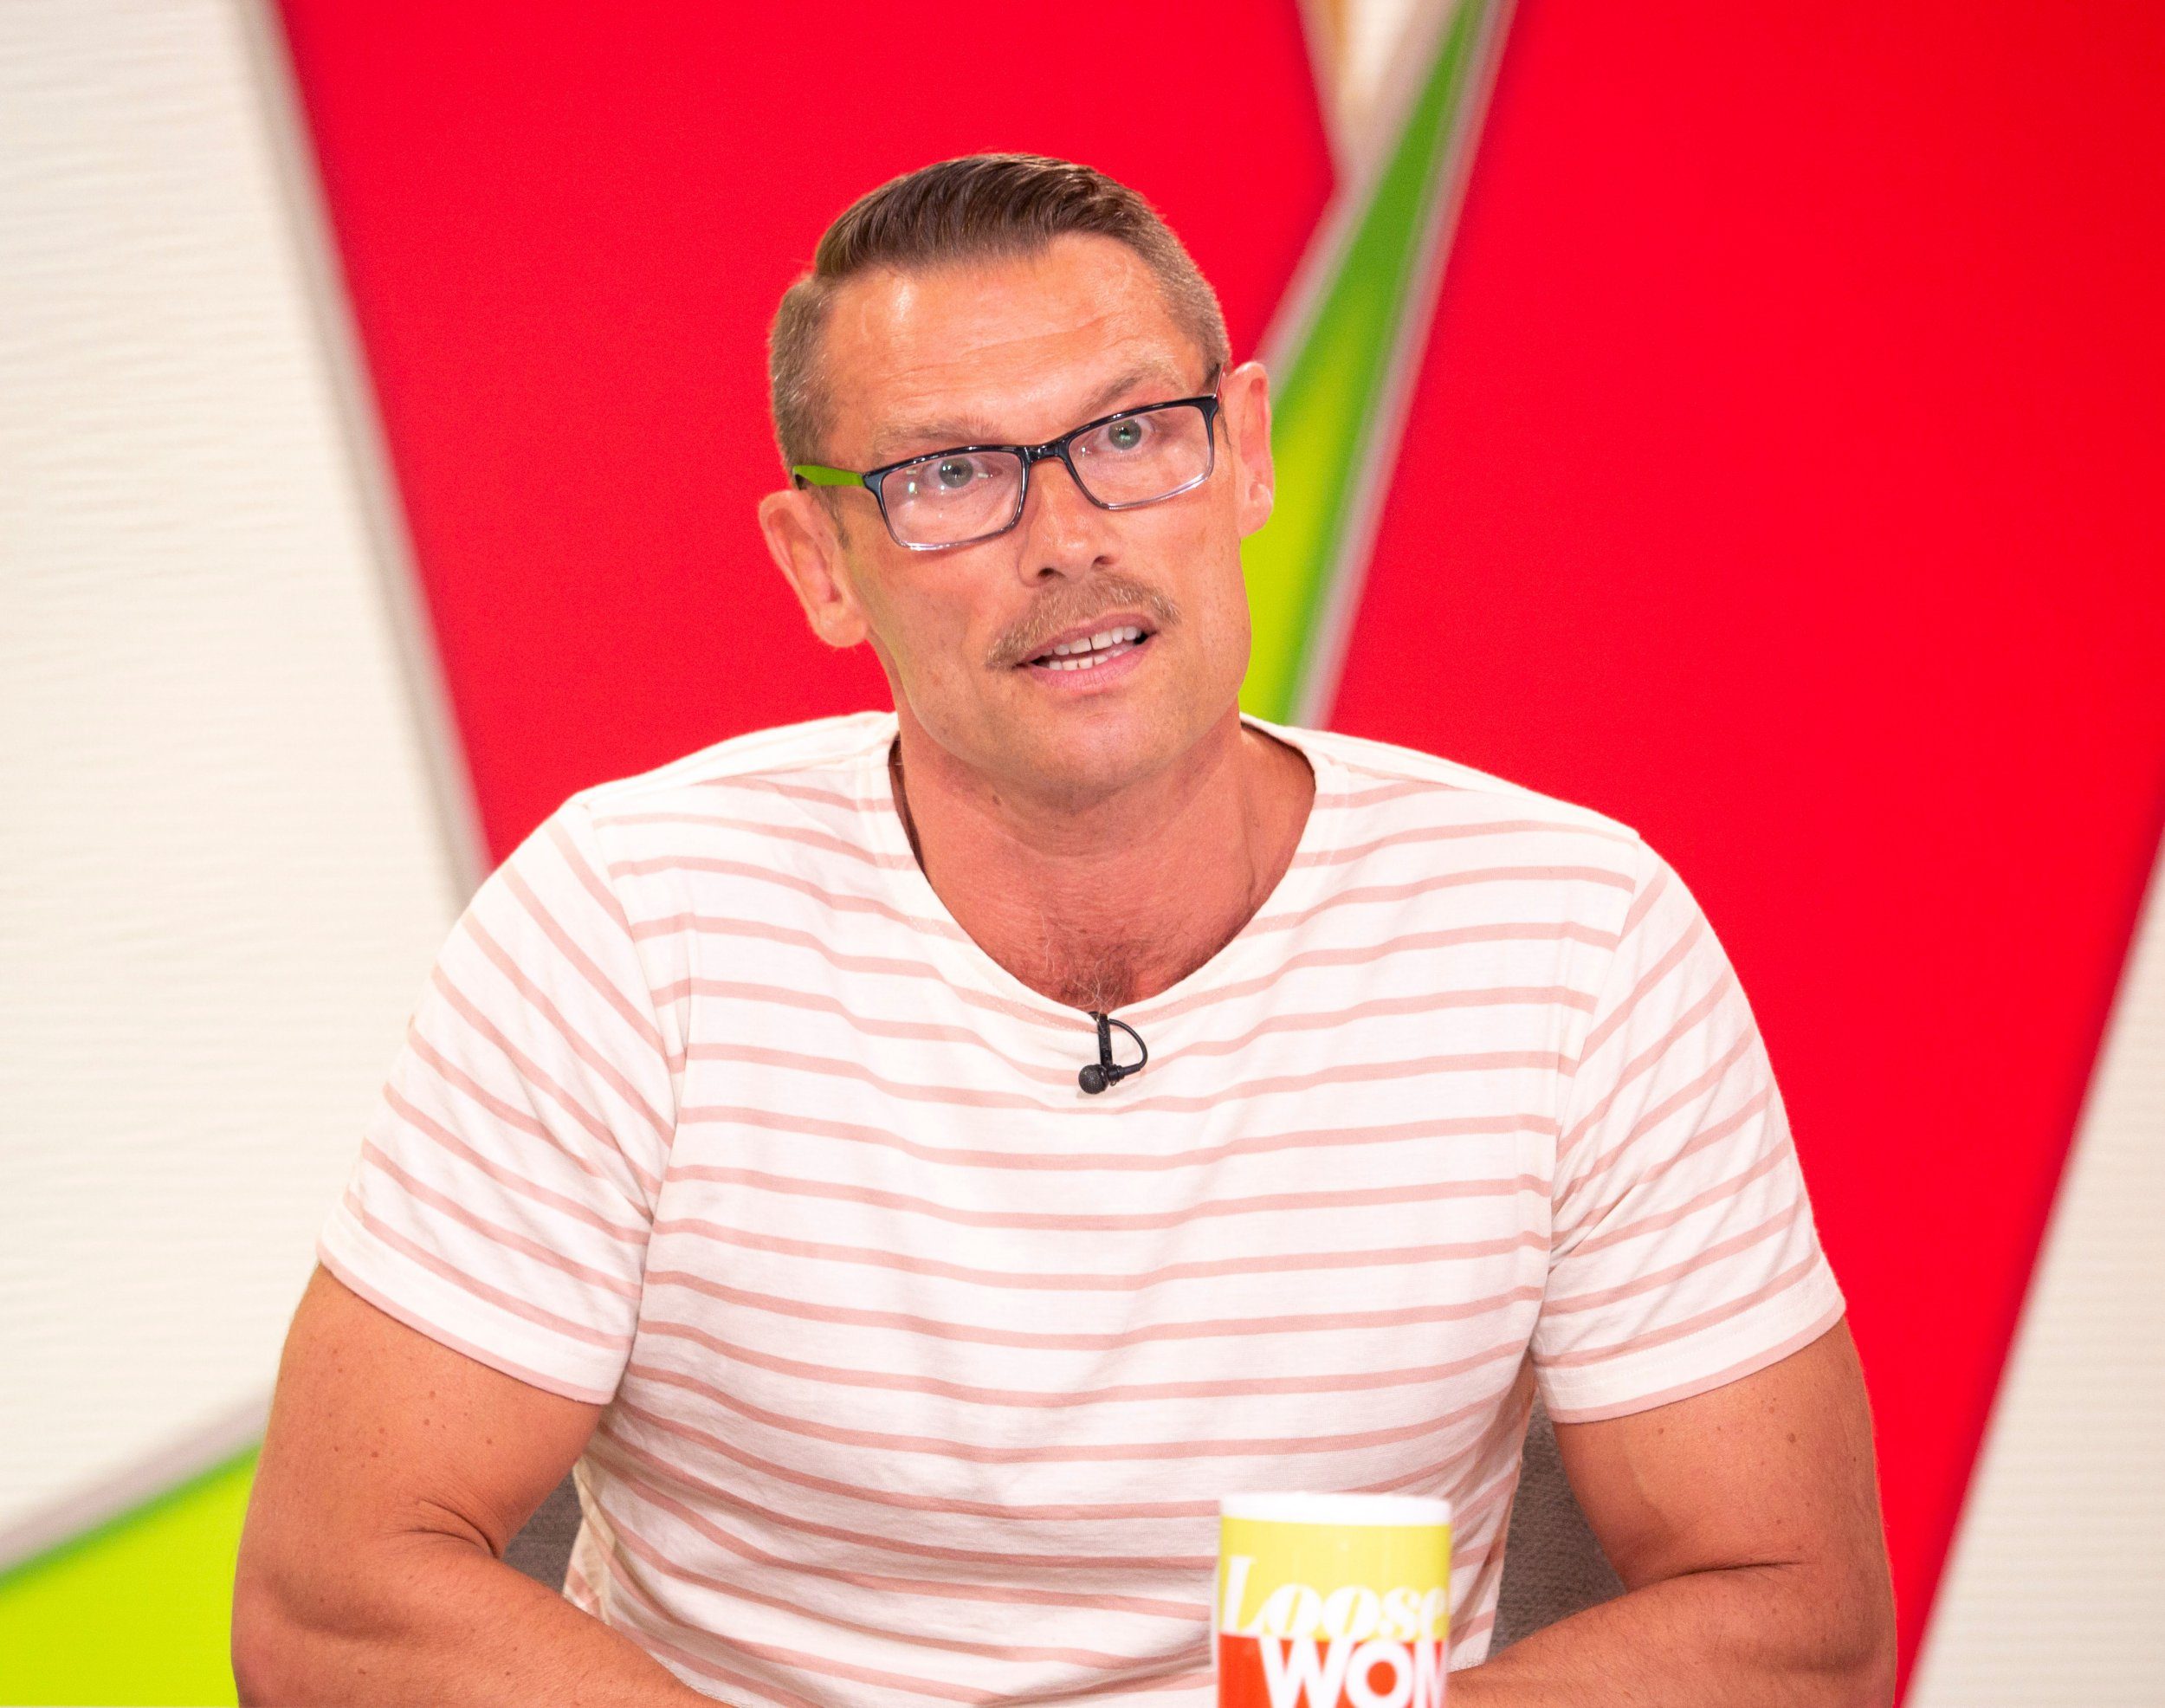 Editorial use only Mandatory Credit: Photo by S Meddle/ITV/REX/Shutterstock (9695874v) John Partridge 'Loose Women' TV show, London, UK - 29 May 2018